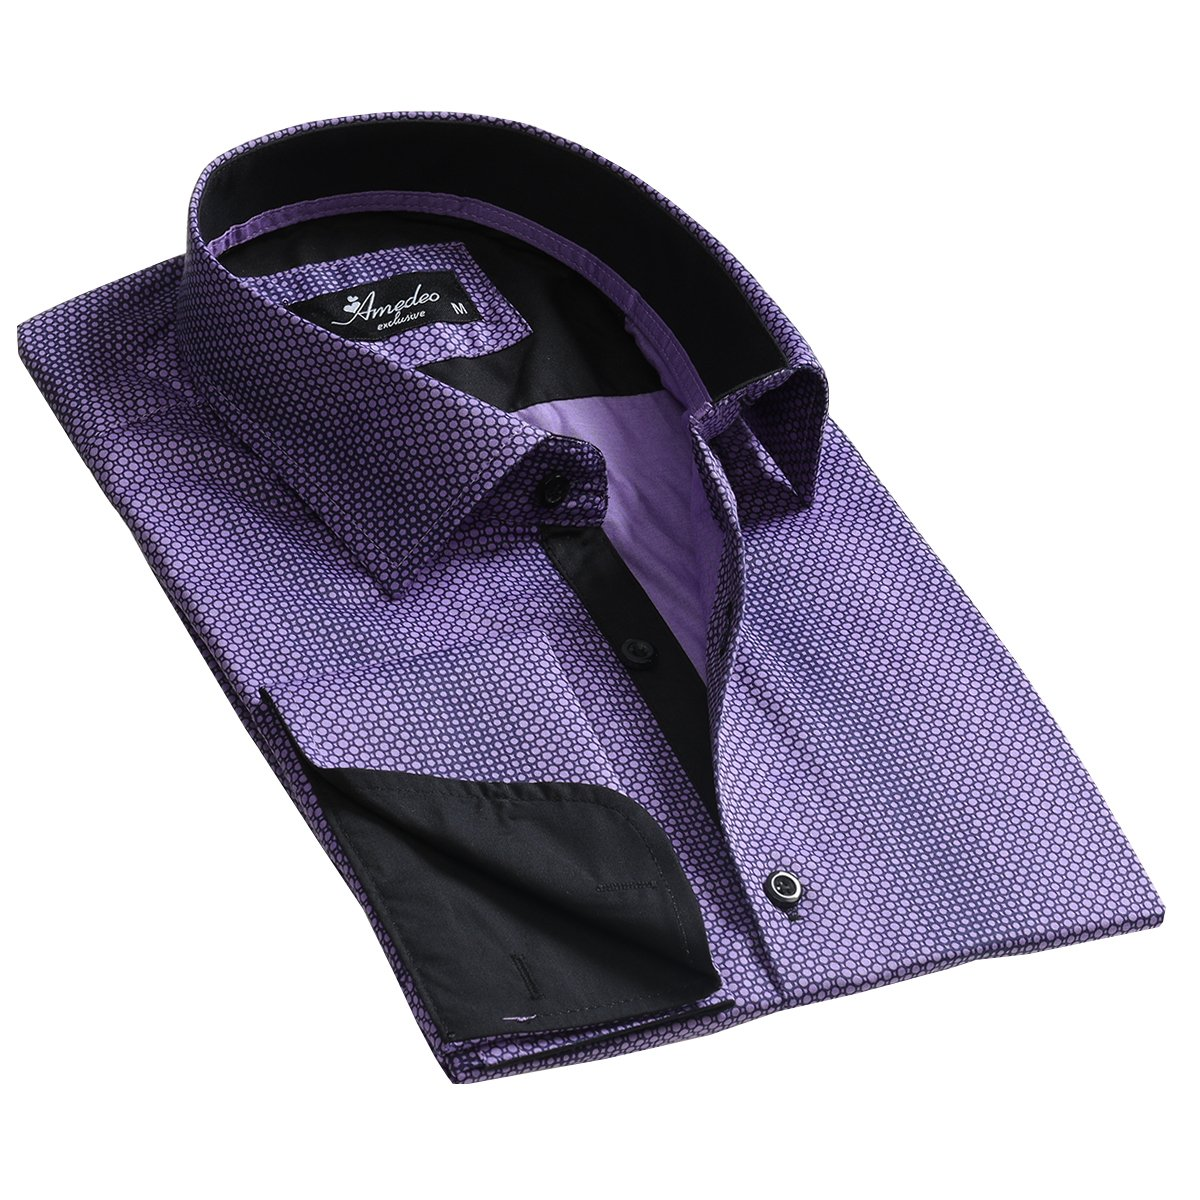 Purple Design Mens Slim Fit French Cuff Dress Shirts with Cufflink Holes - Casual and Formal - Amedeo Exclusive